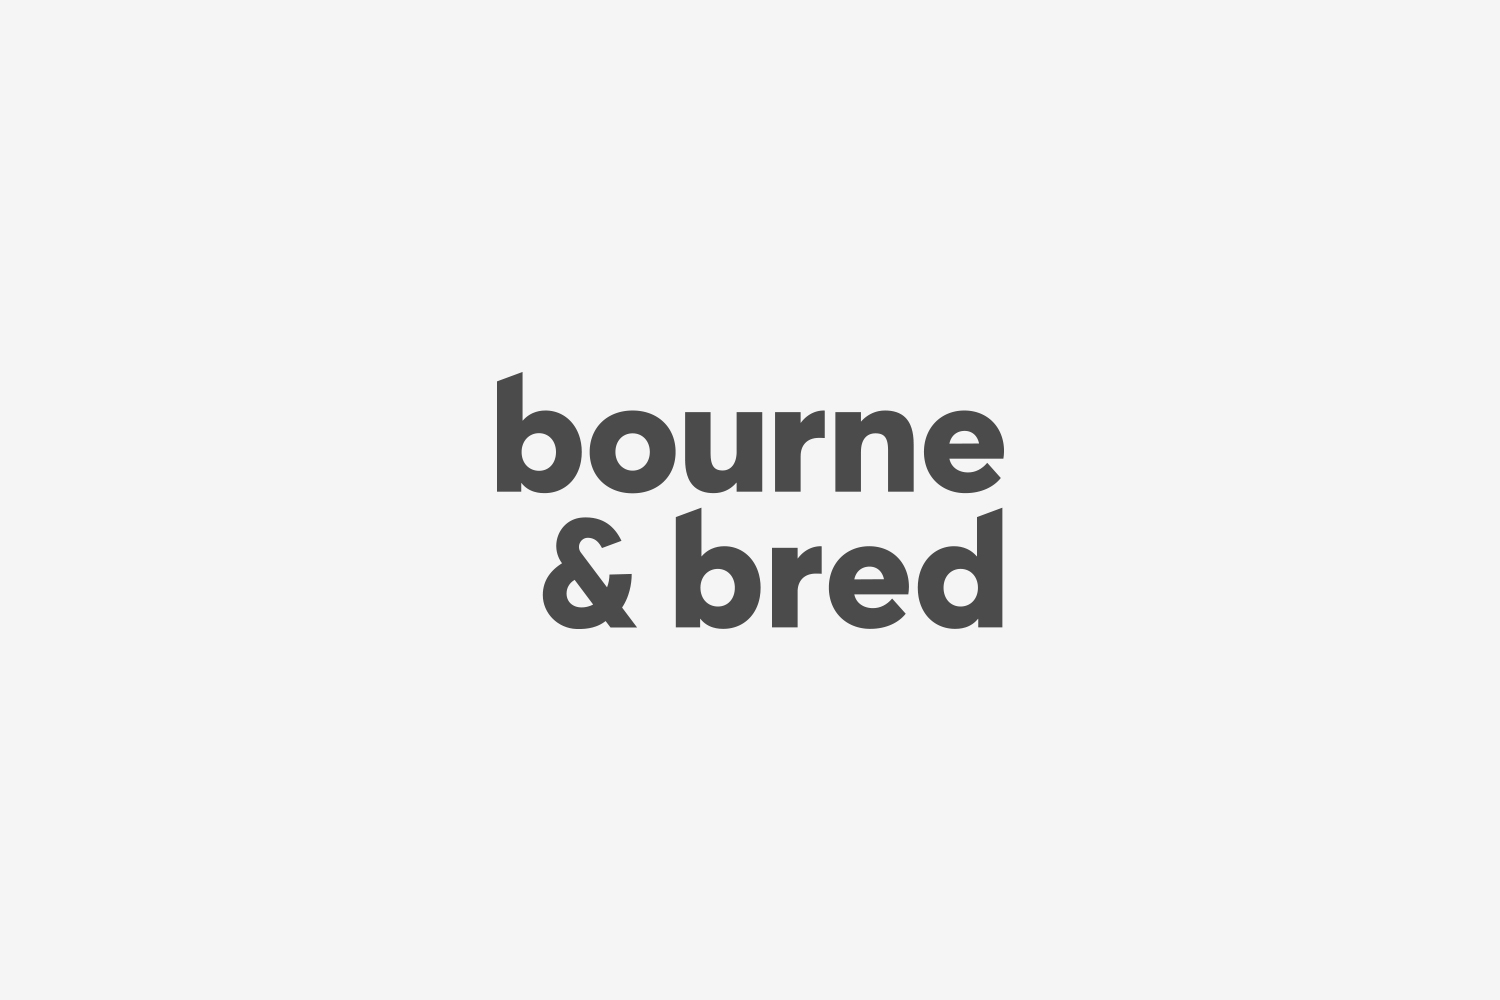 Bourne_and_bred_logo